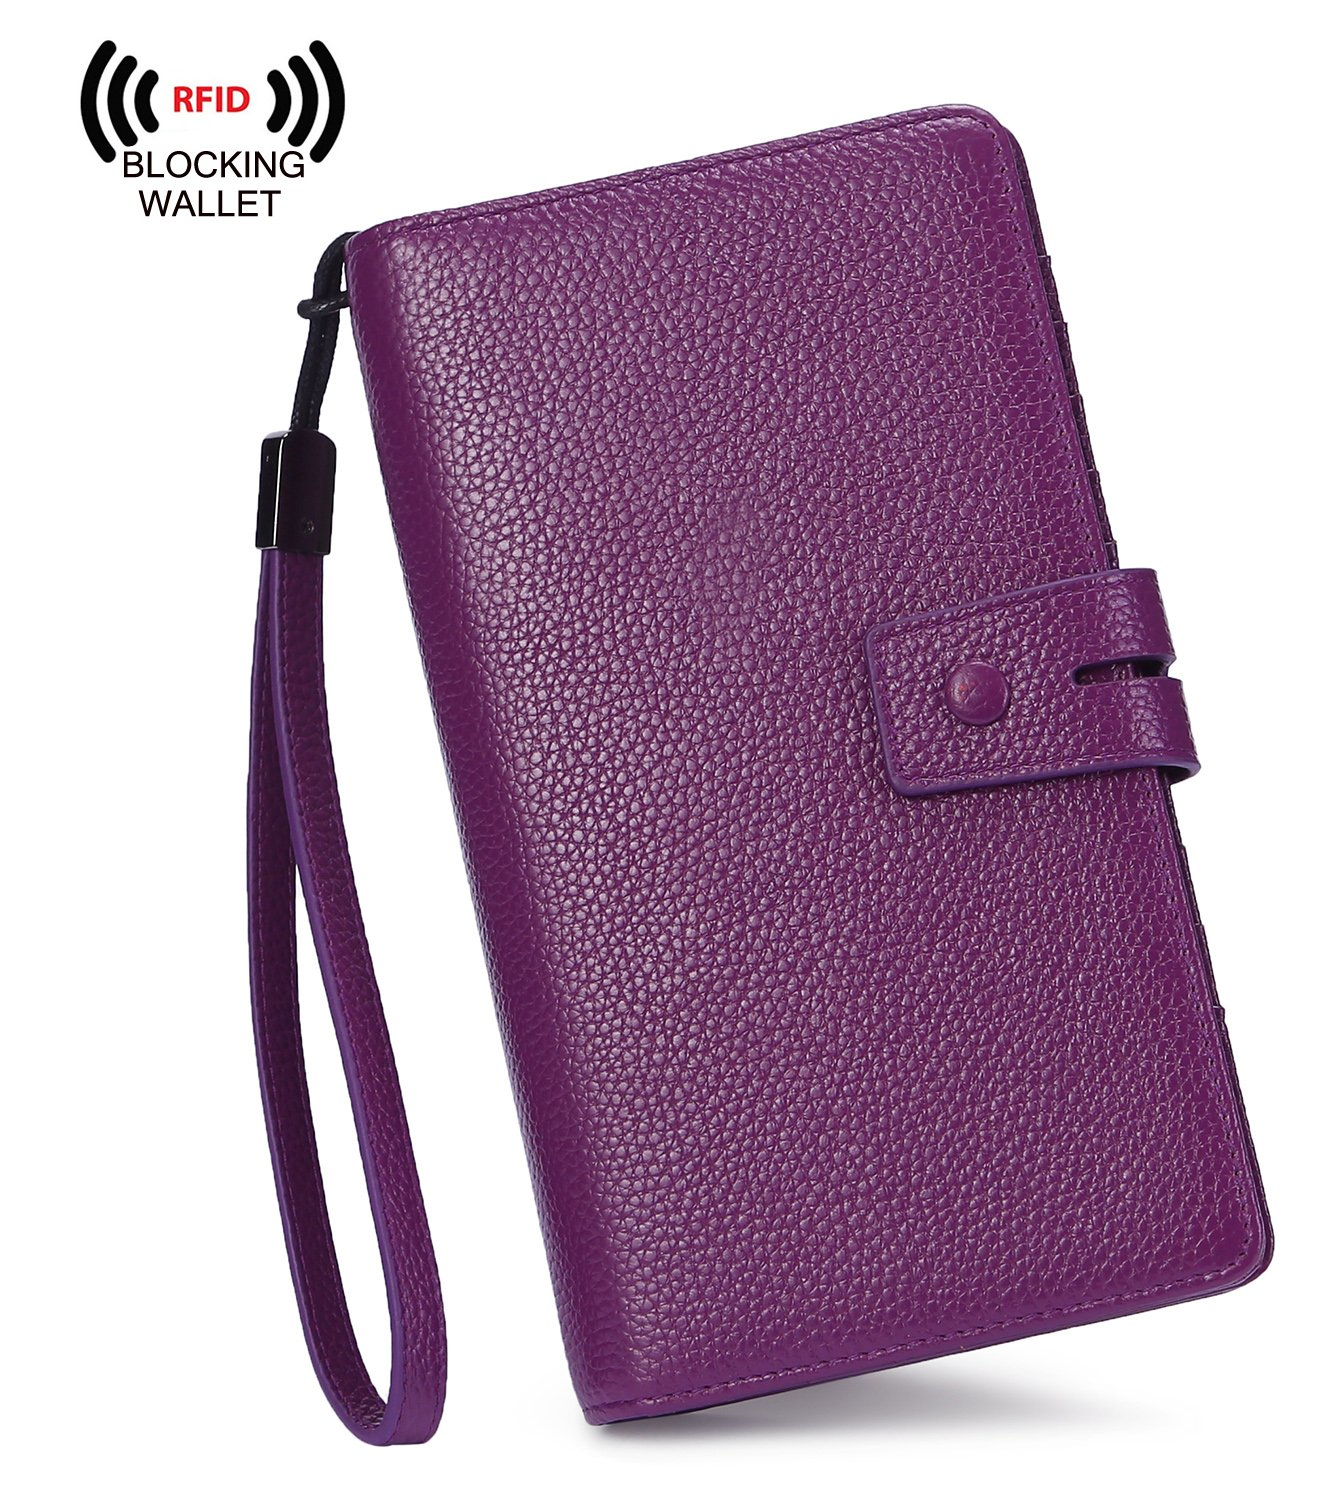 AINIMOER Women's Big RFID Blocking Leather Zip Around Wallets for Womens Clutch Organizer Checkbook Holder Large Travel Purse(Lichee Purple) by AINIMOER (Image #2)